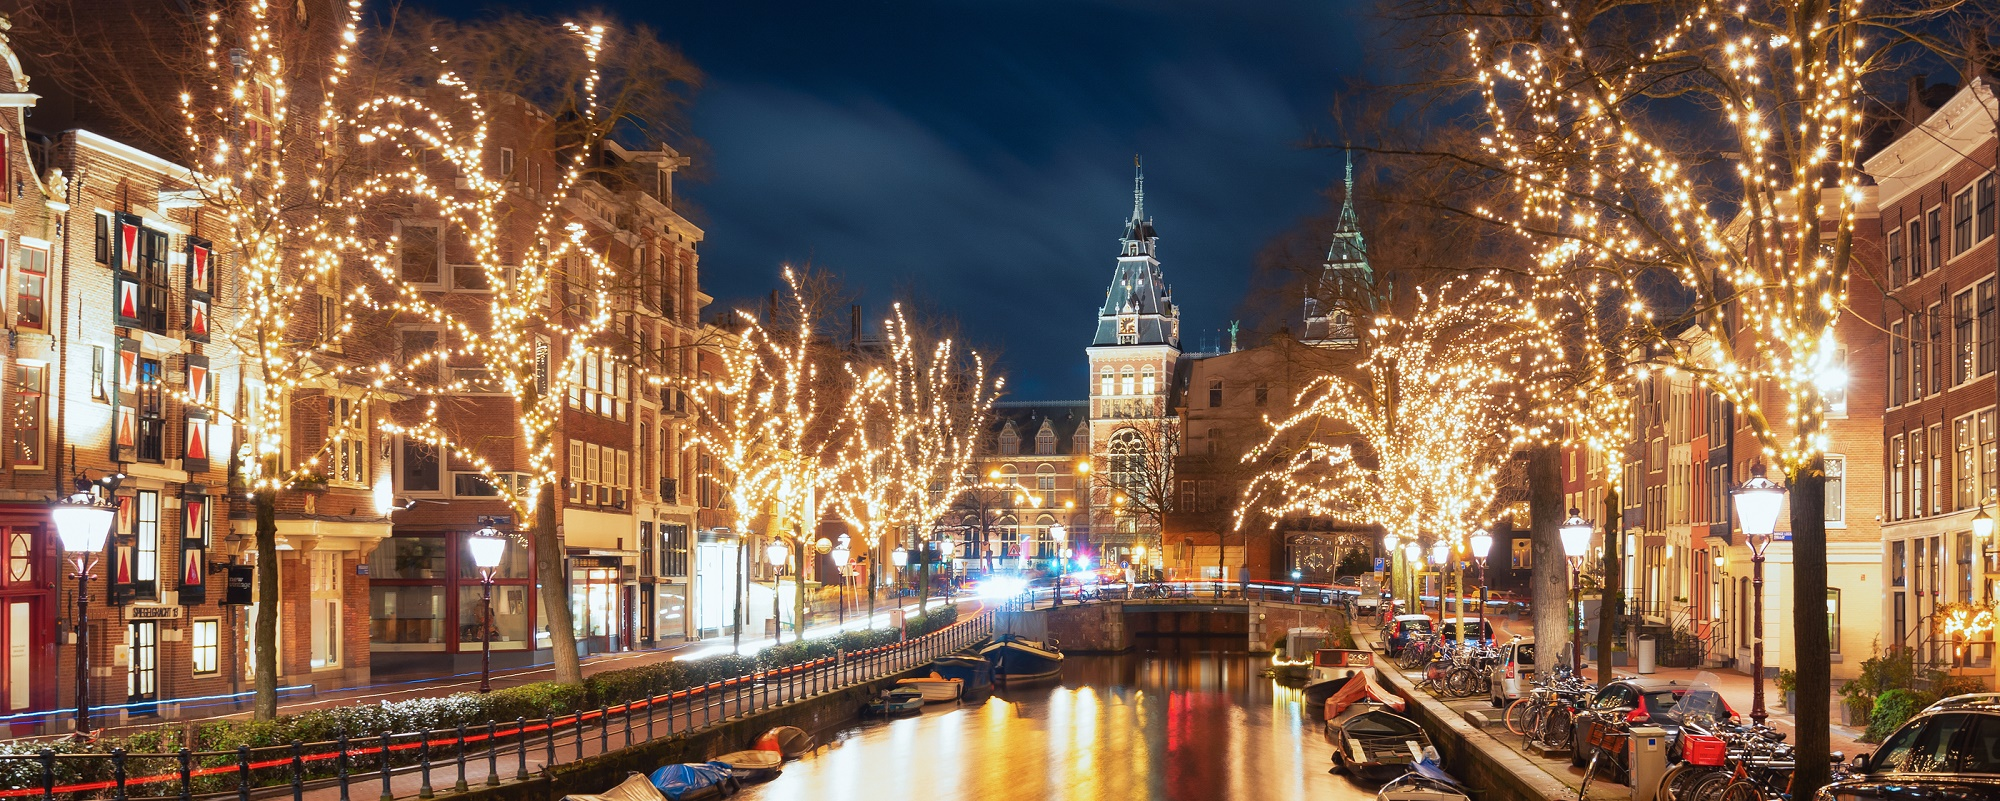 Our tips for an unforgettable December holiday in Amsterdam